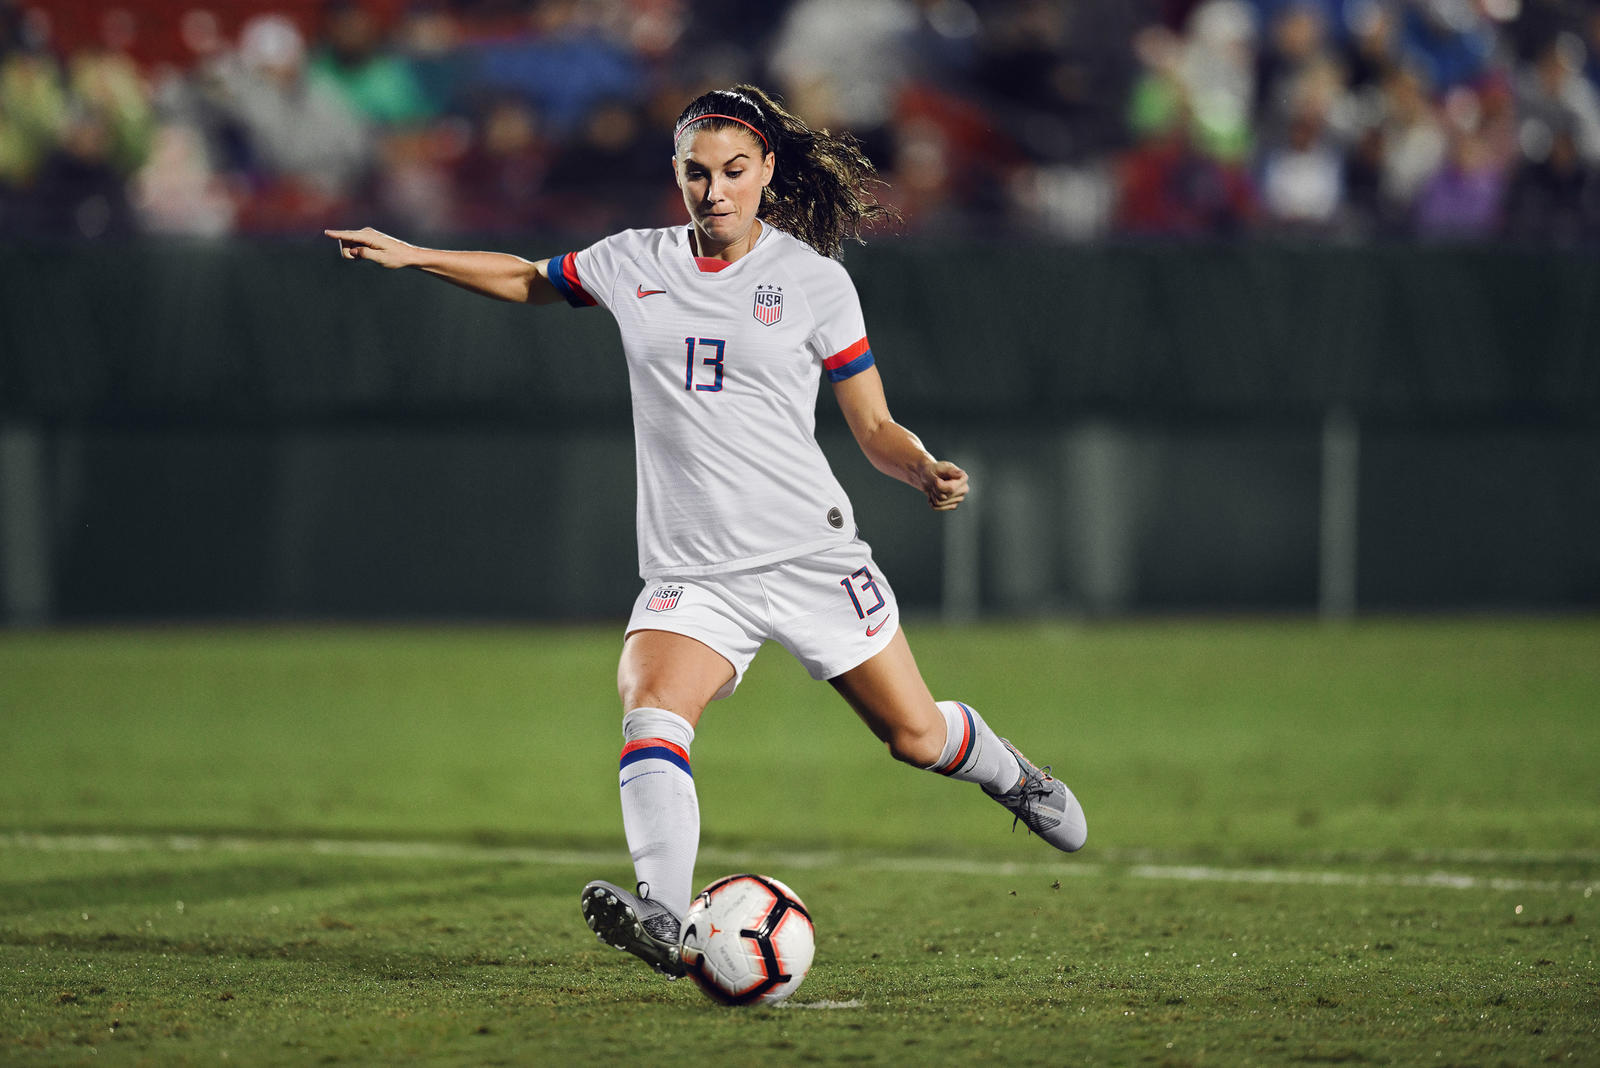 usa-national-team-kit-2019-performance-001_85967.jpg